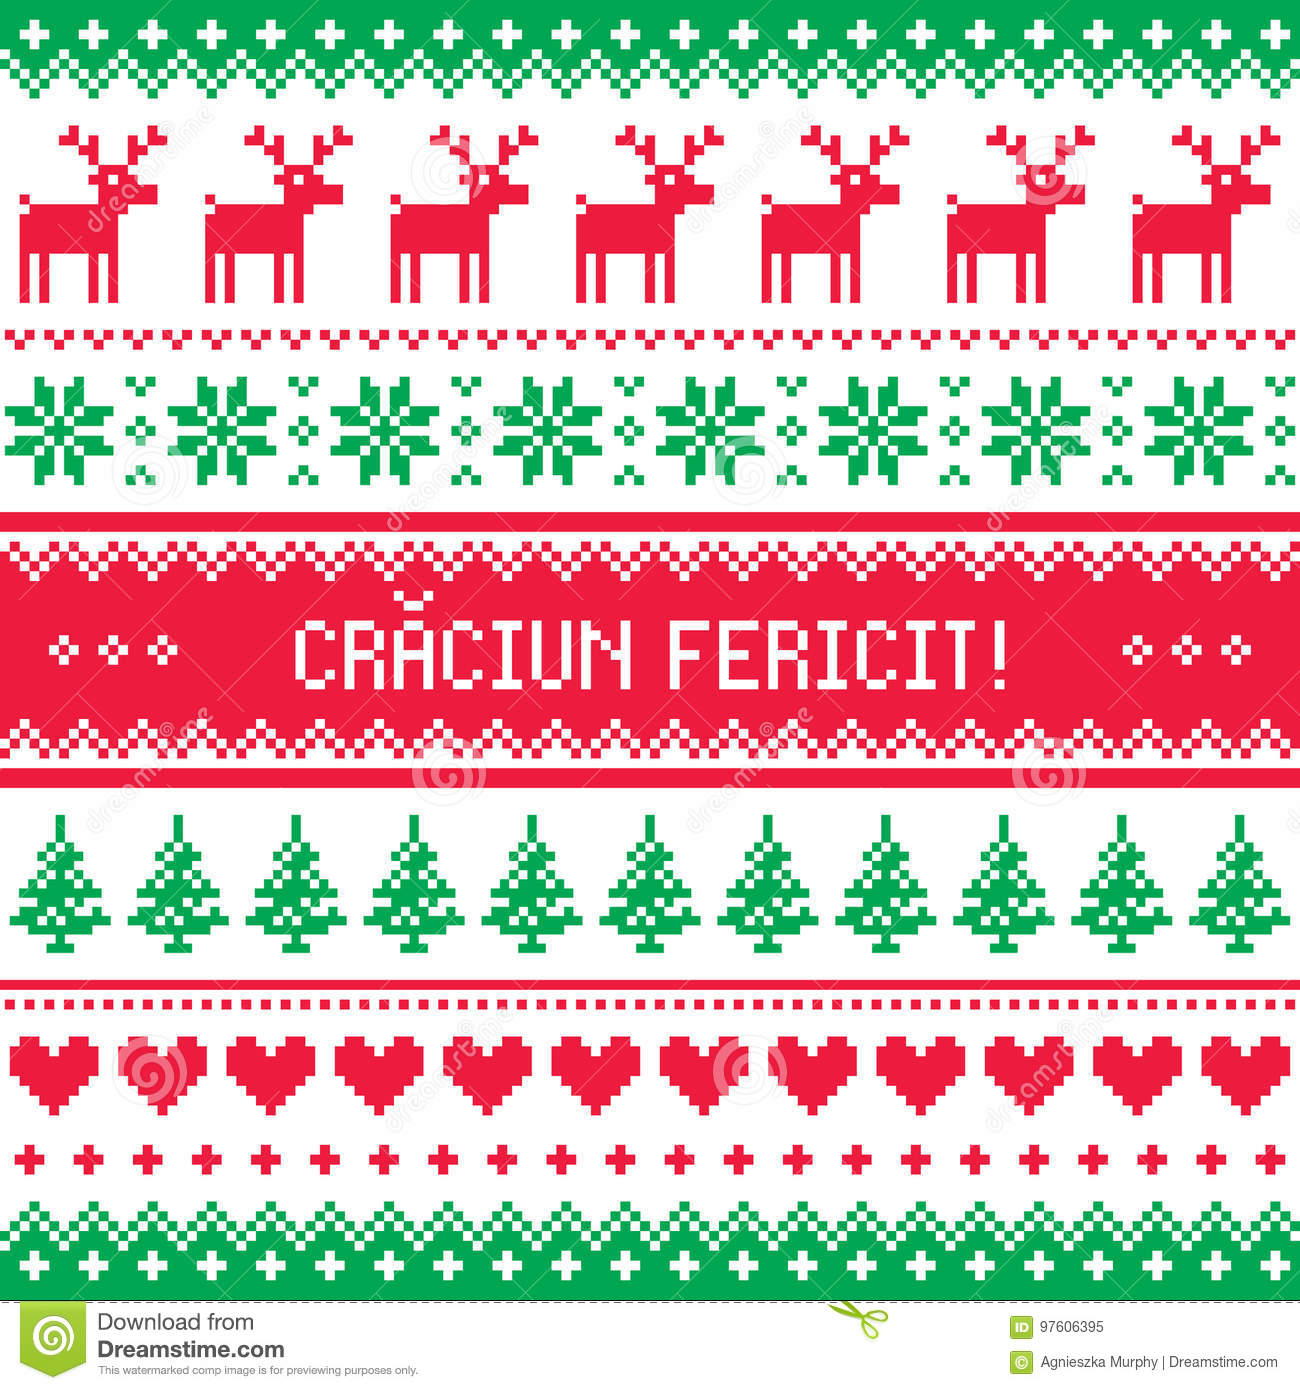 Craciun fericit greeting card merry christmas in romanian pattern craciun fericit greeting card merry christmas in romanian pattern m4hsunfo